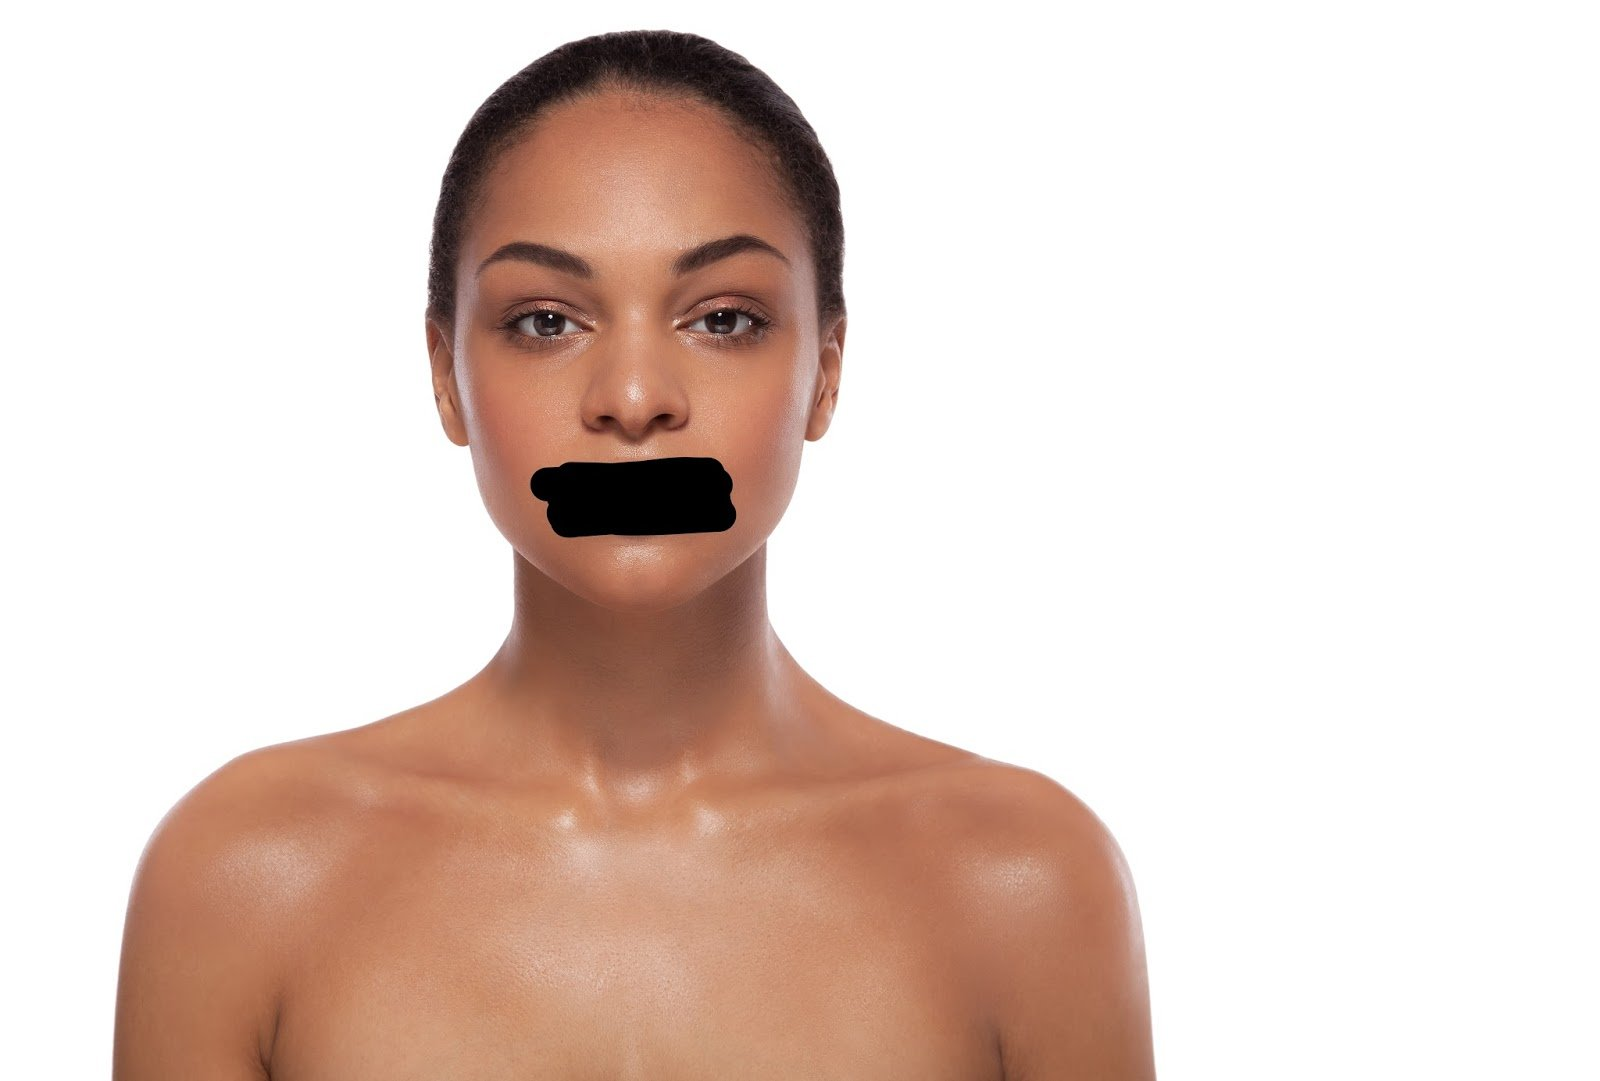 Do You Find it Hard to Speak Up for Yourself?